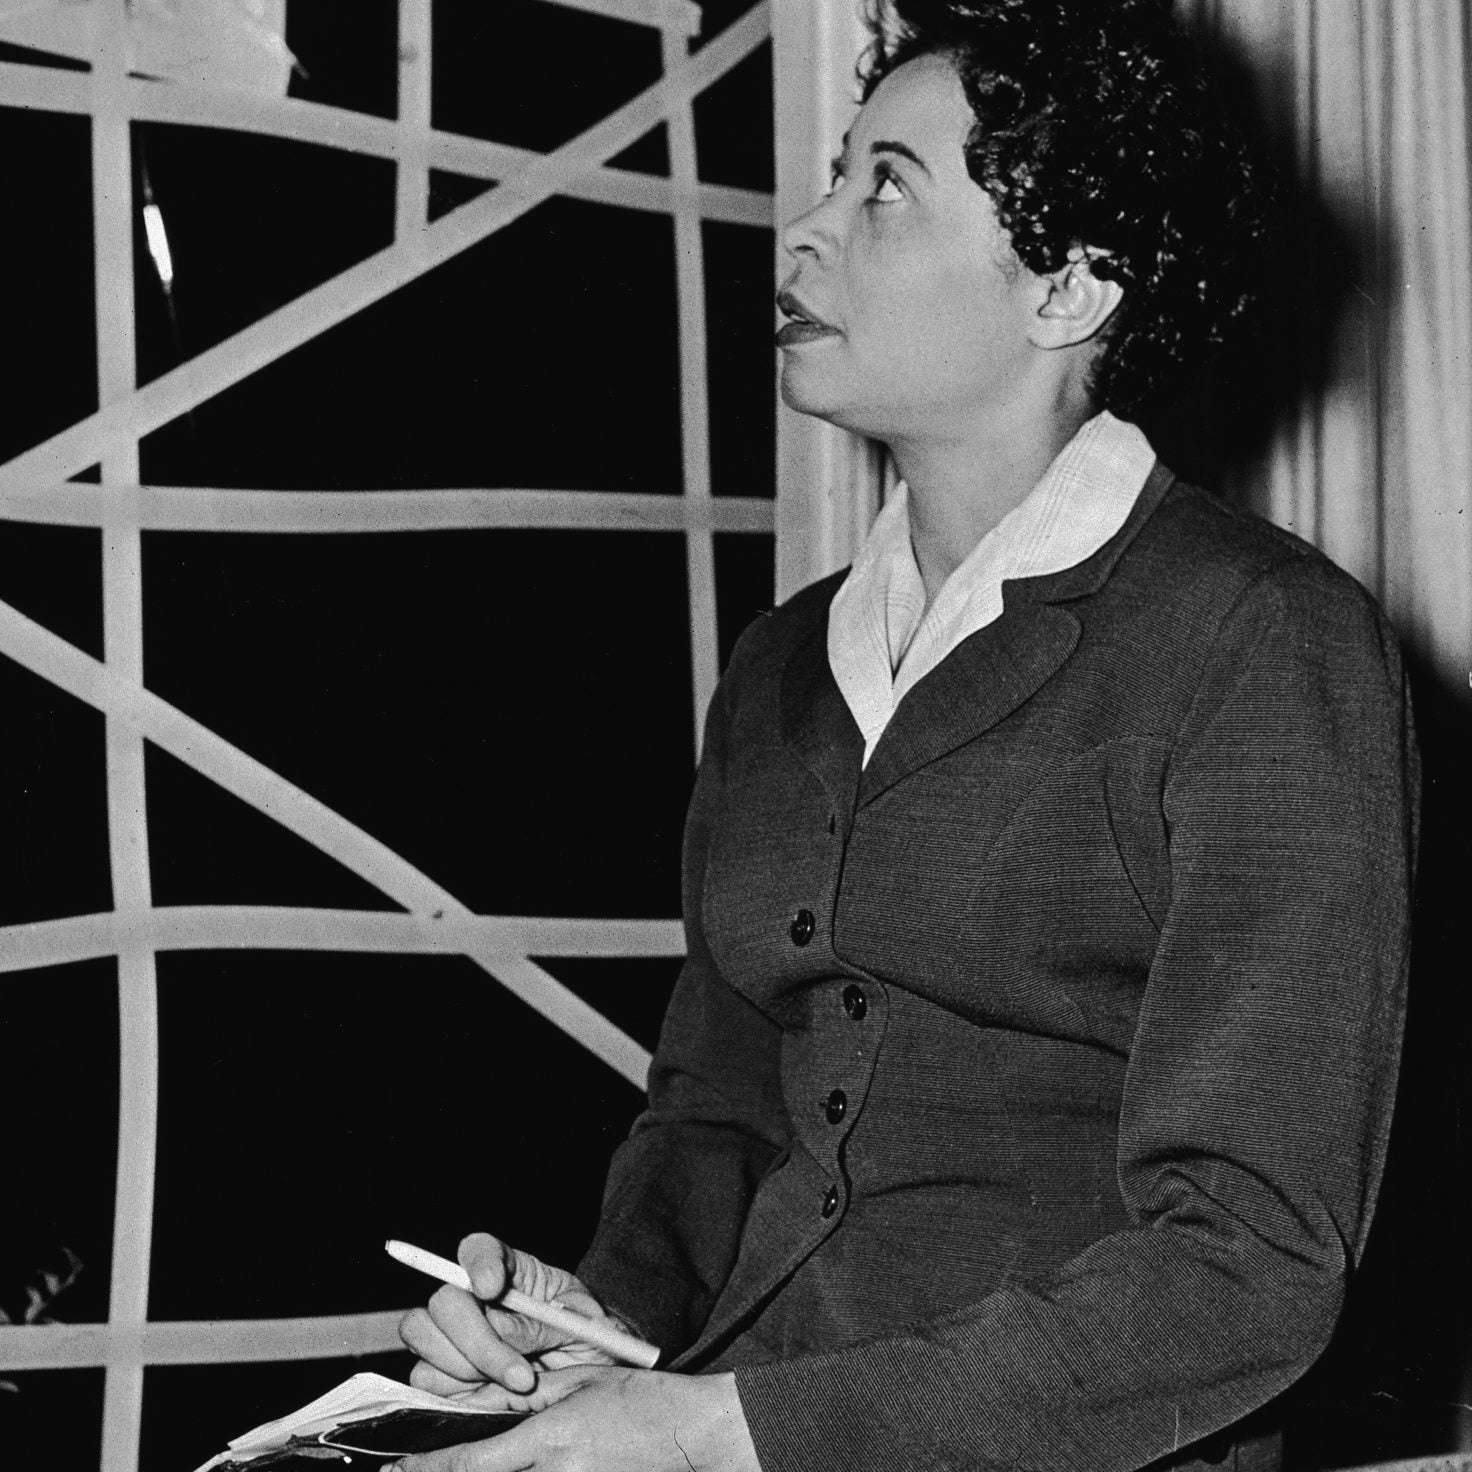 Daisy Bates's Fight For School Desegregation